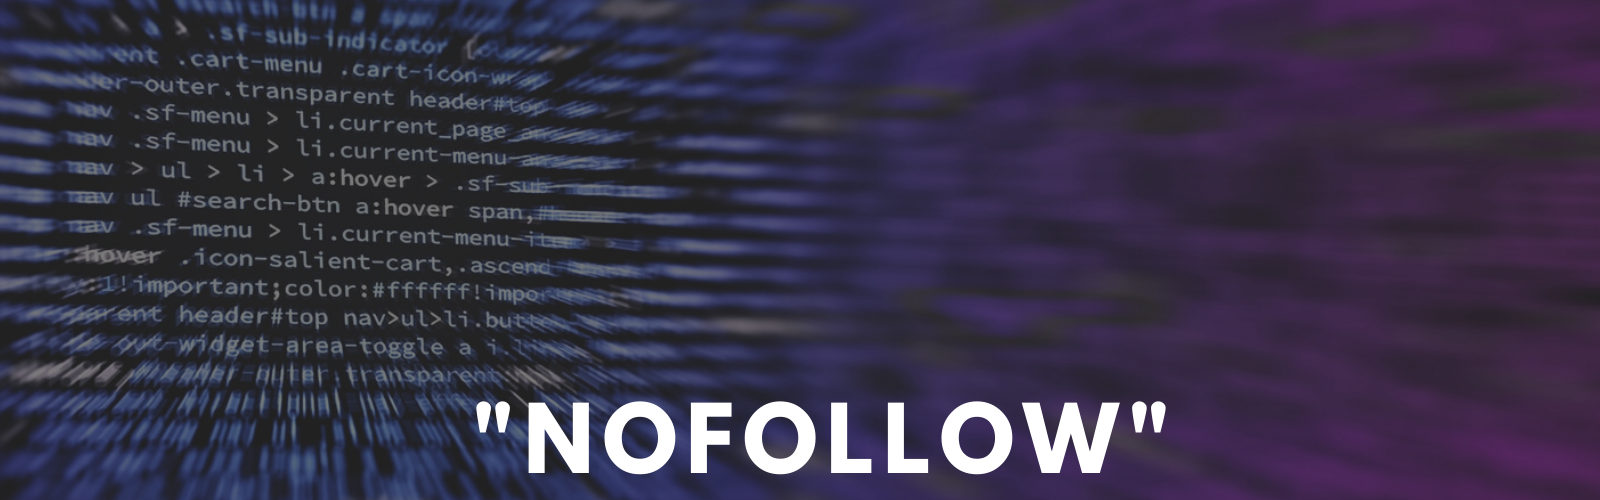 The second stage of Google's nofollow algorithm update is imminent